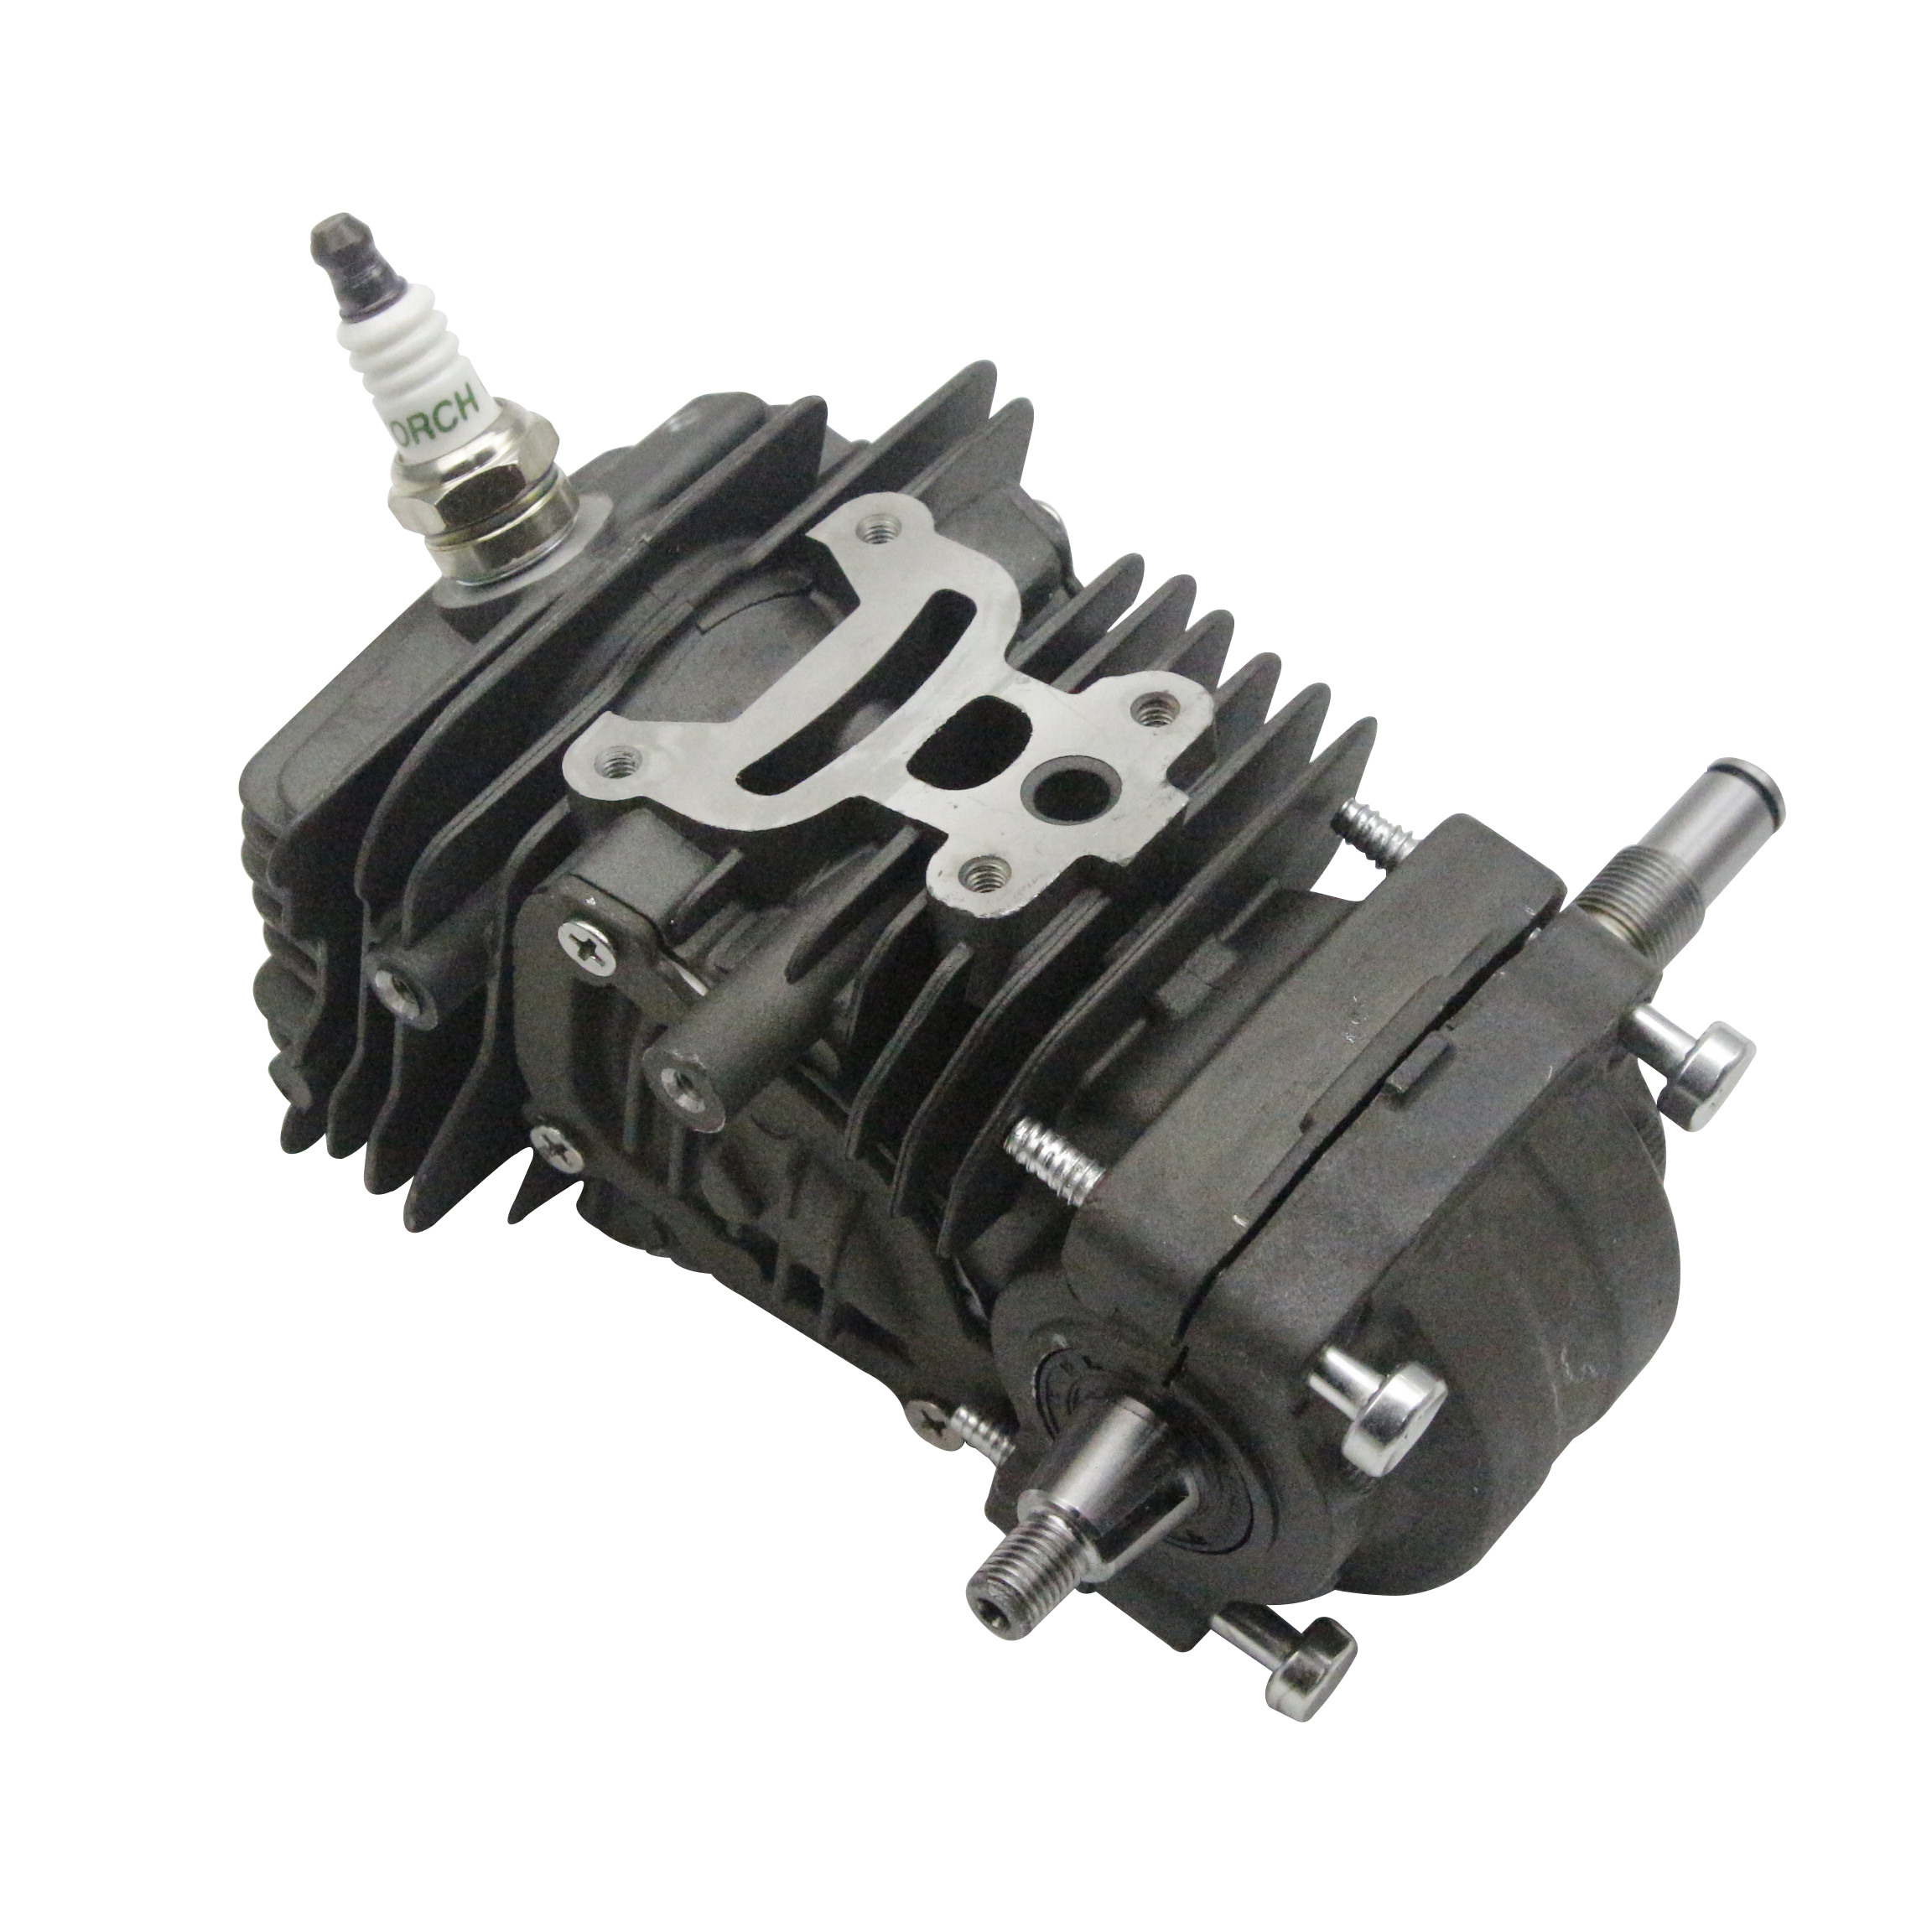 Us Engine Motor For Stihl Ms171 Ms181 Ms181c